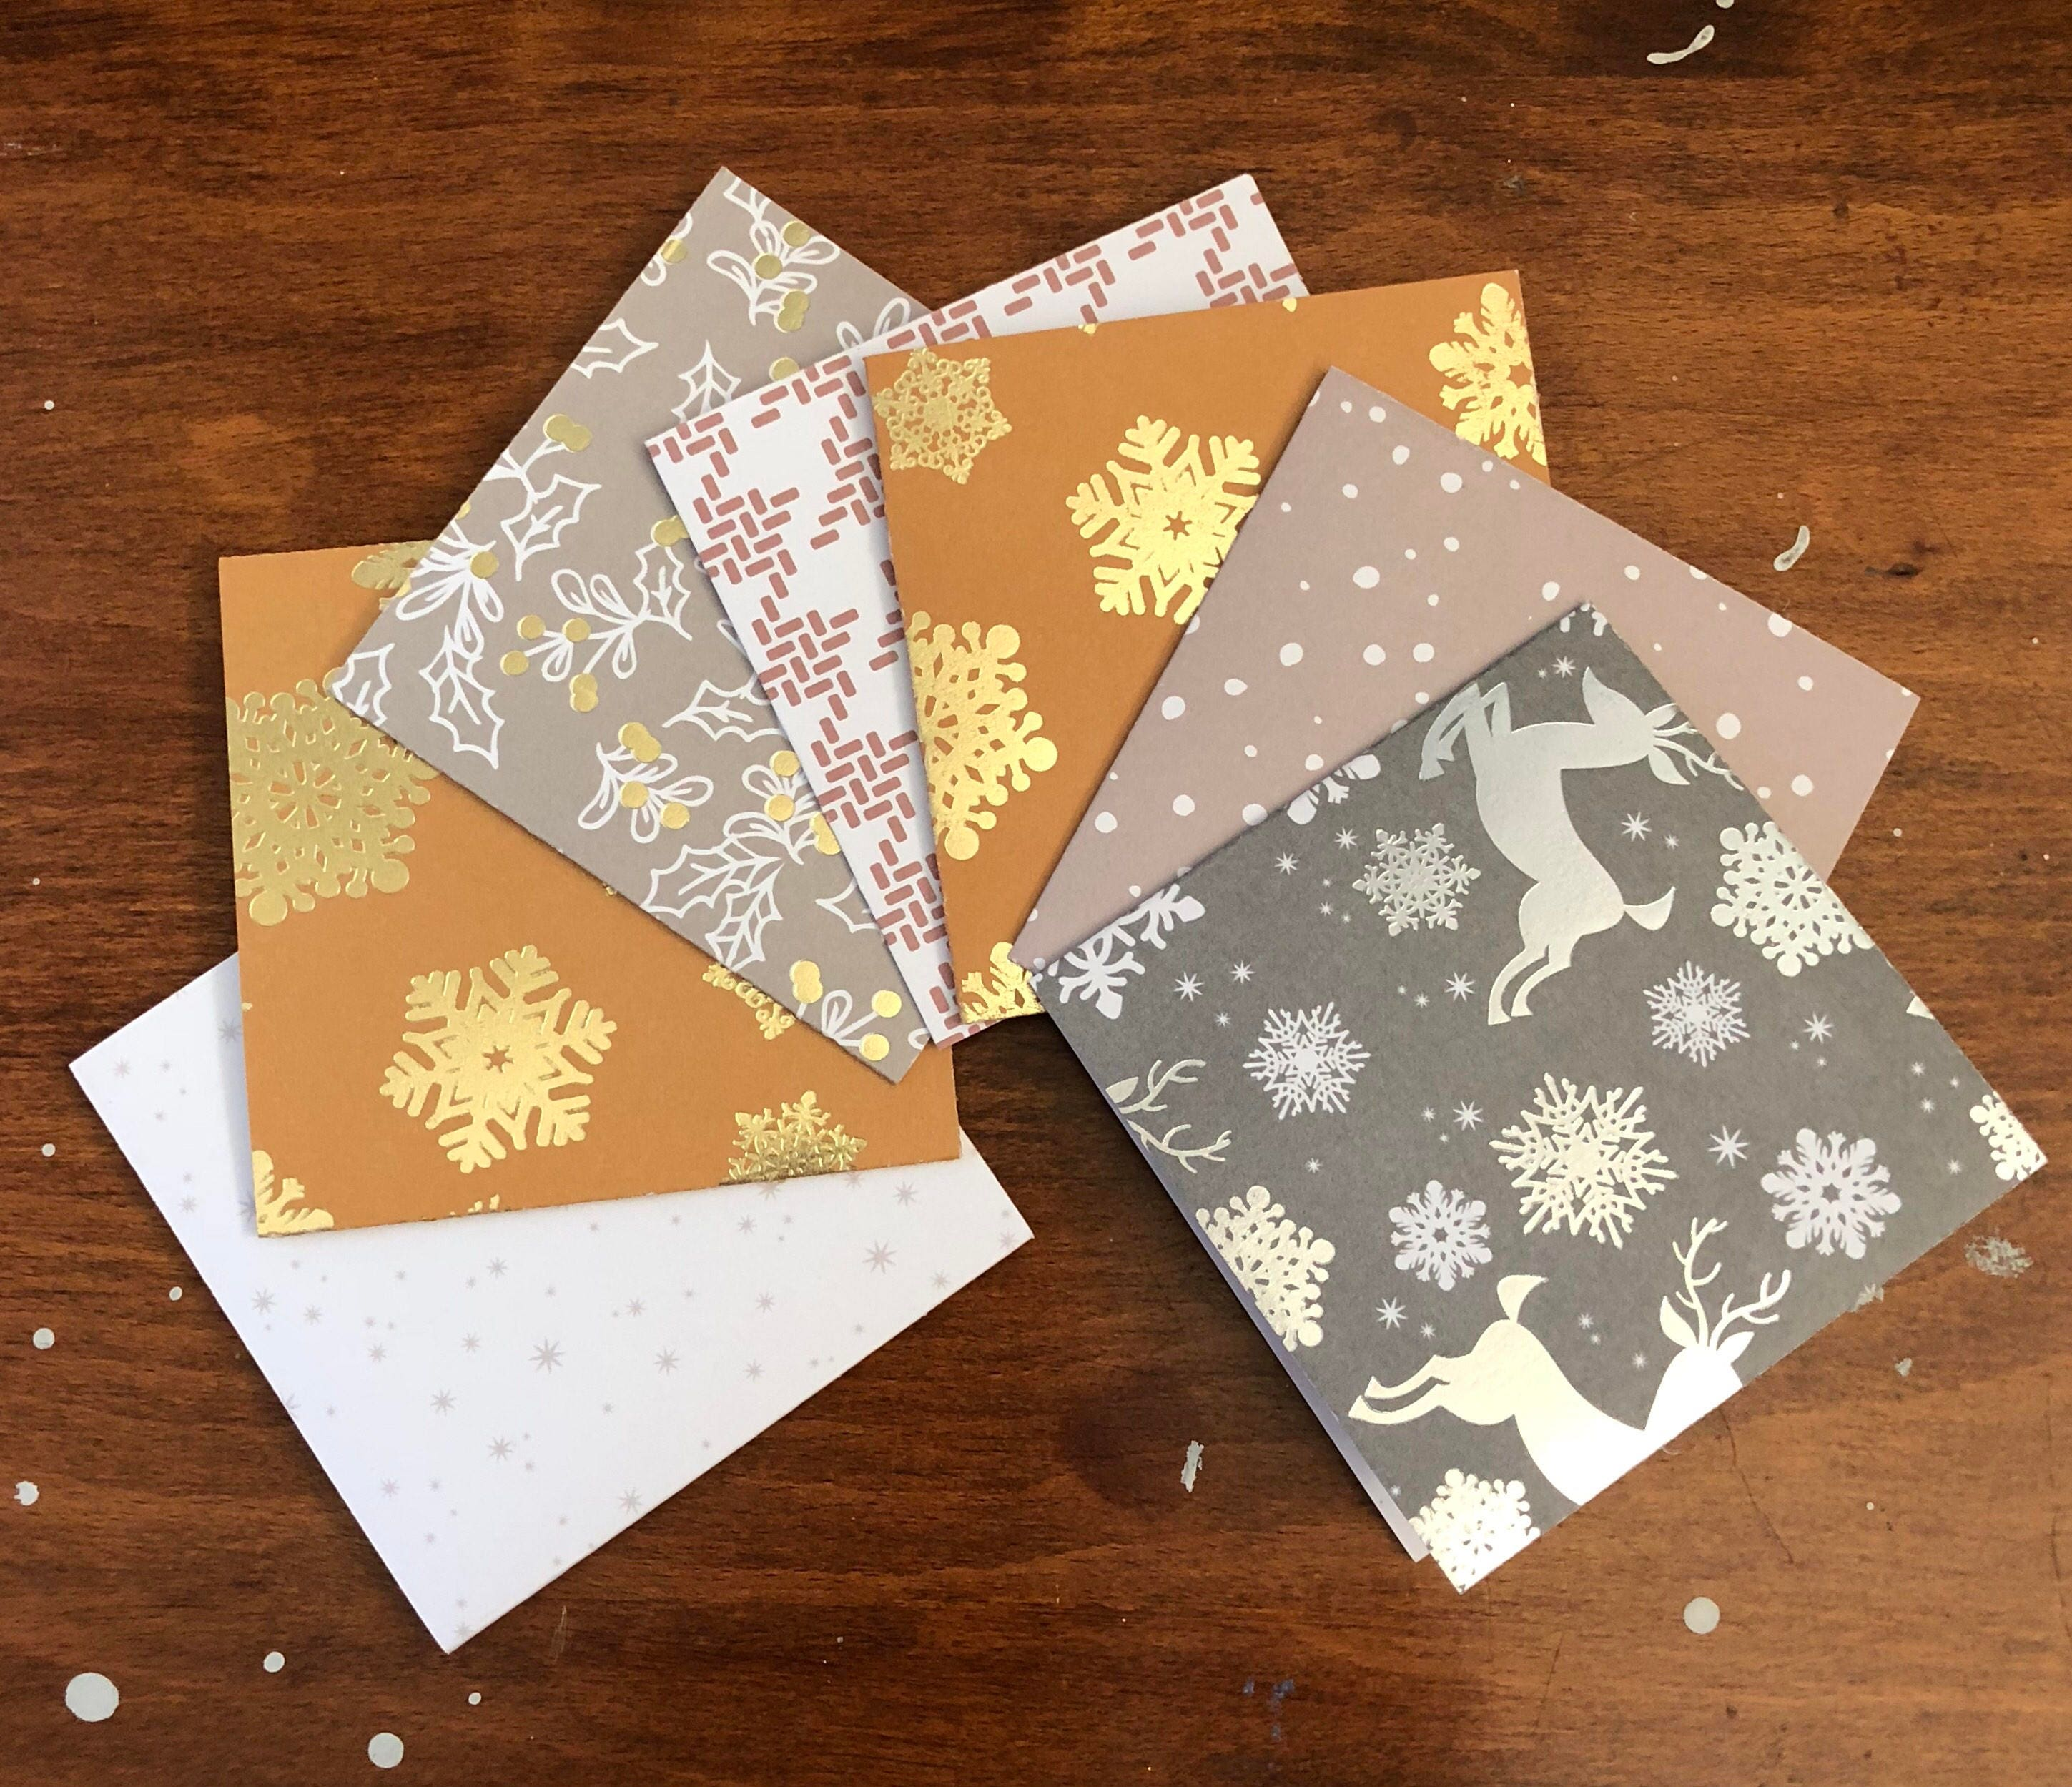 Mini assorted christmas cards 3x3 cards greeting cards holiday mini assorted christmas cards 3x3 cards greeting cards holiday cards note cards kristyandbryce Gallery